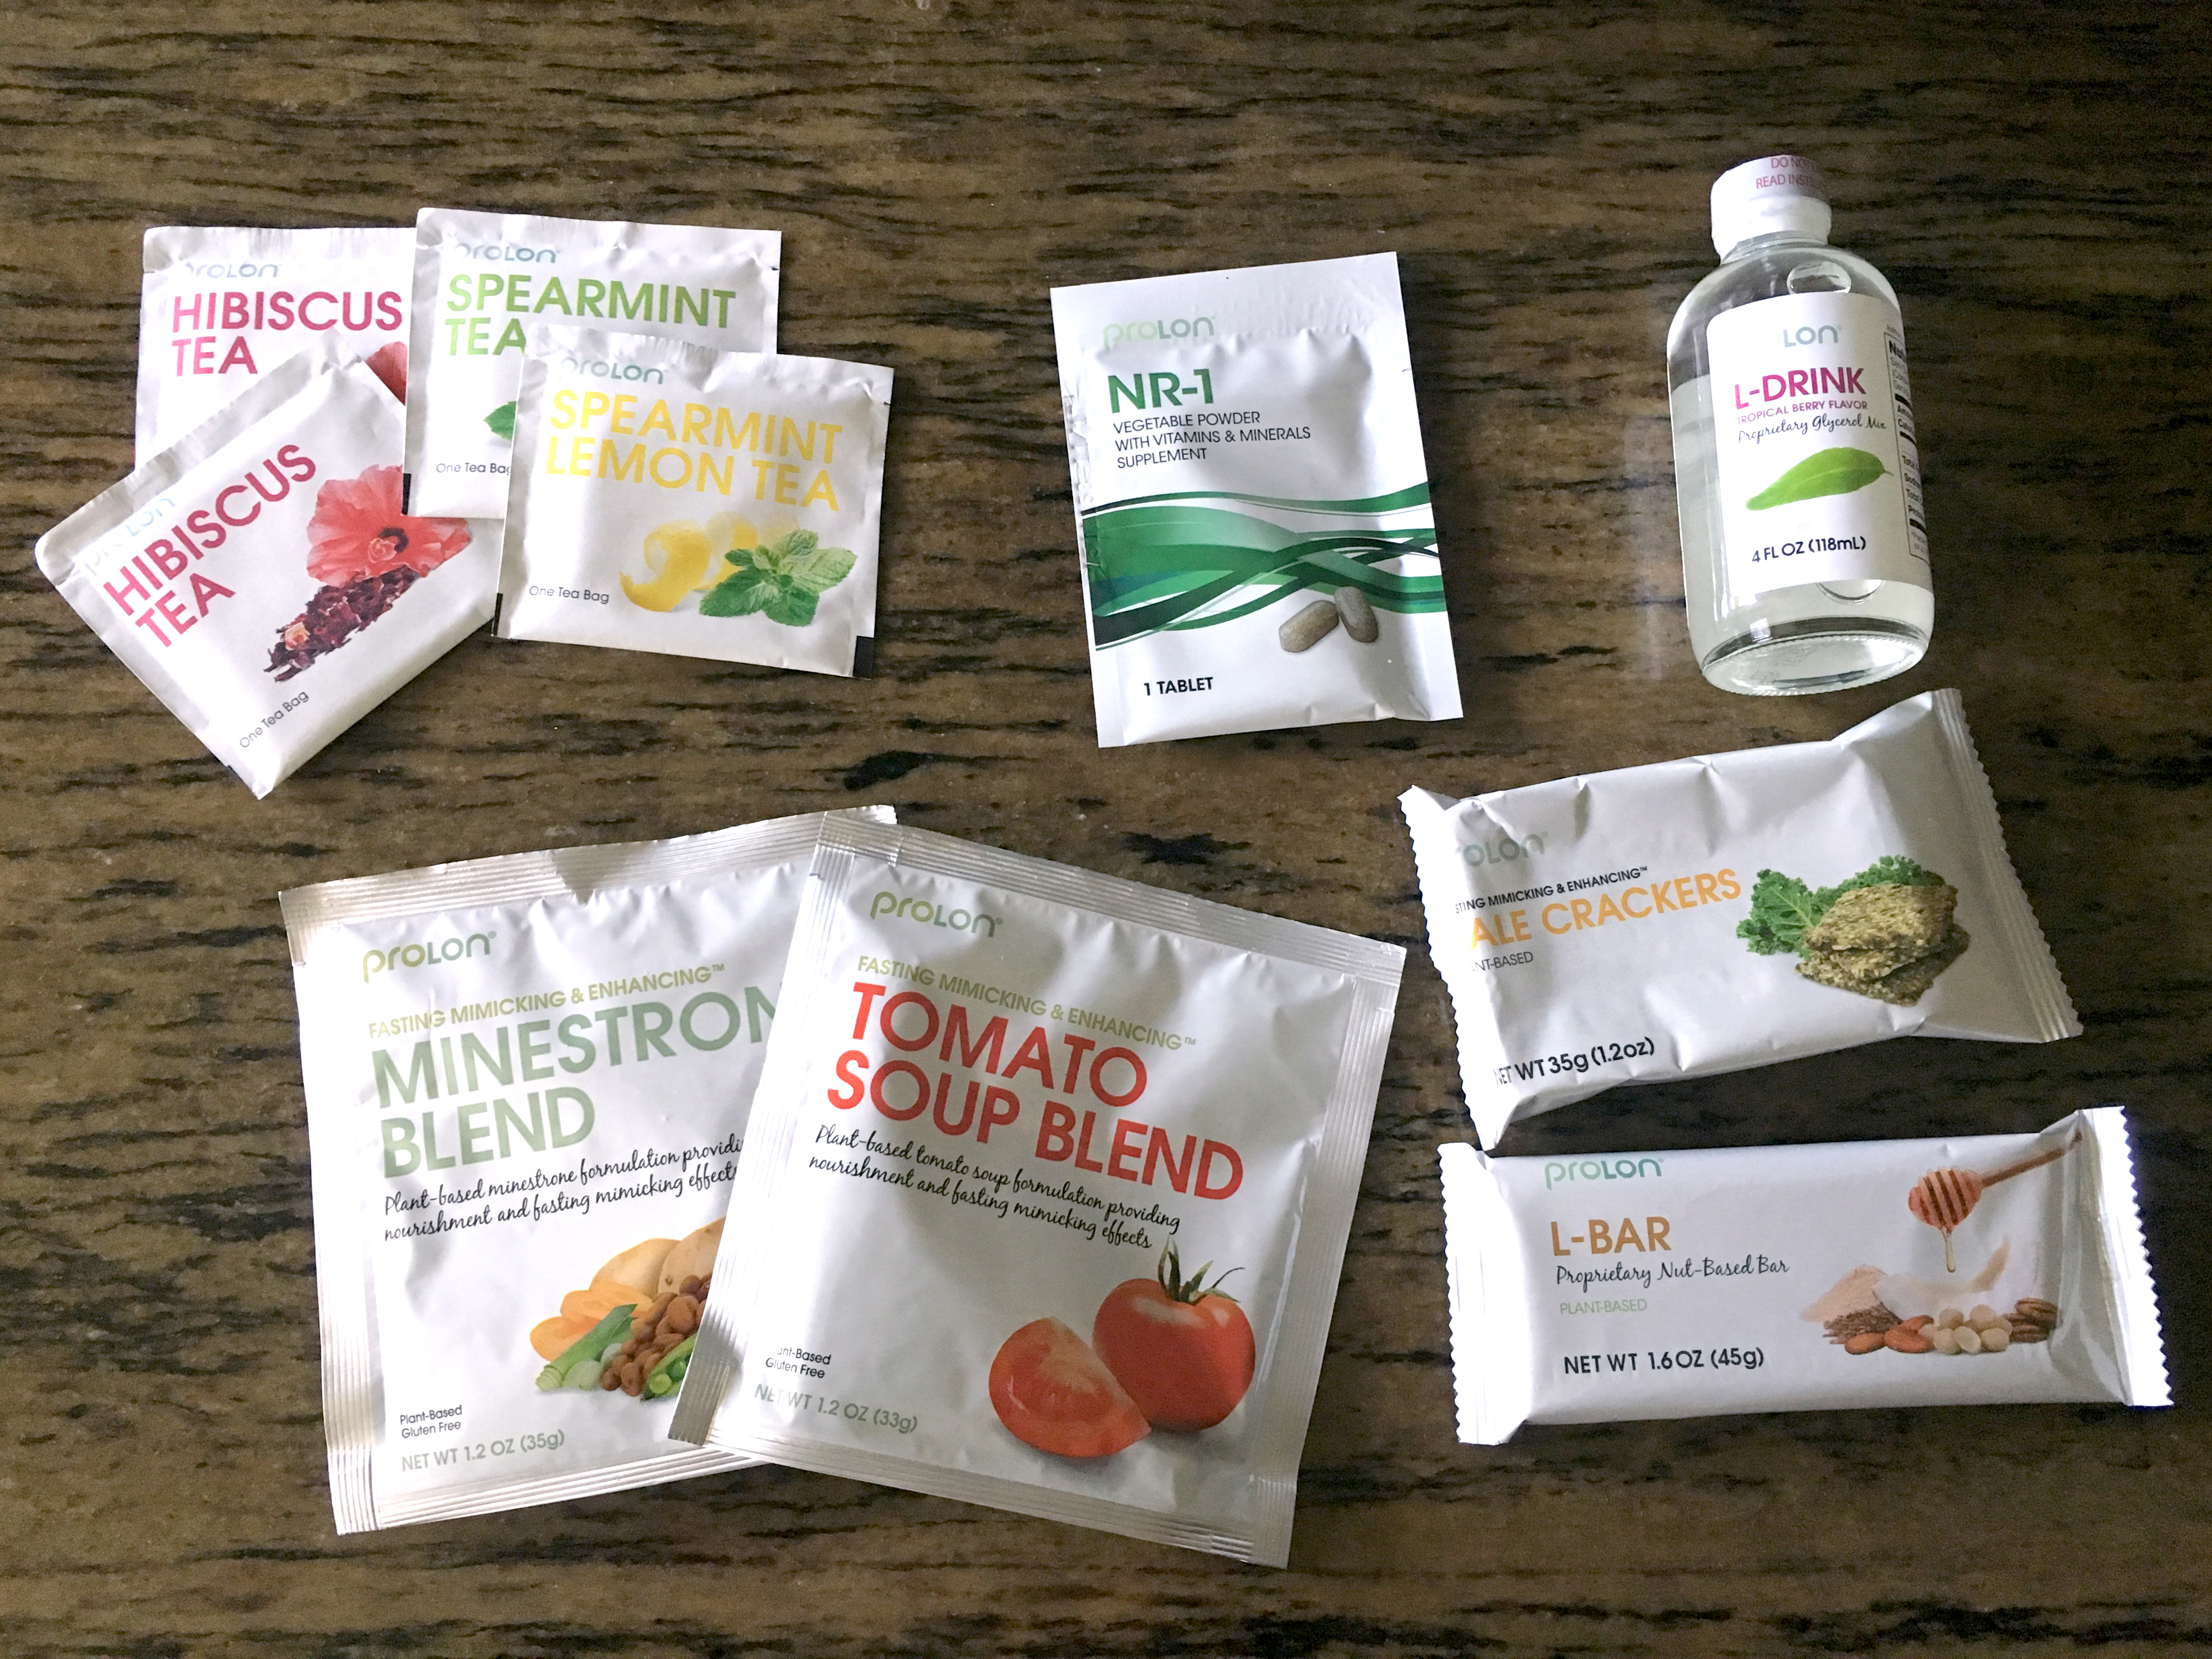 Kale crackers and hibiscus tea: My five days on a 'fasting diet'